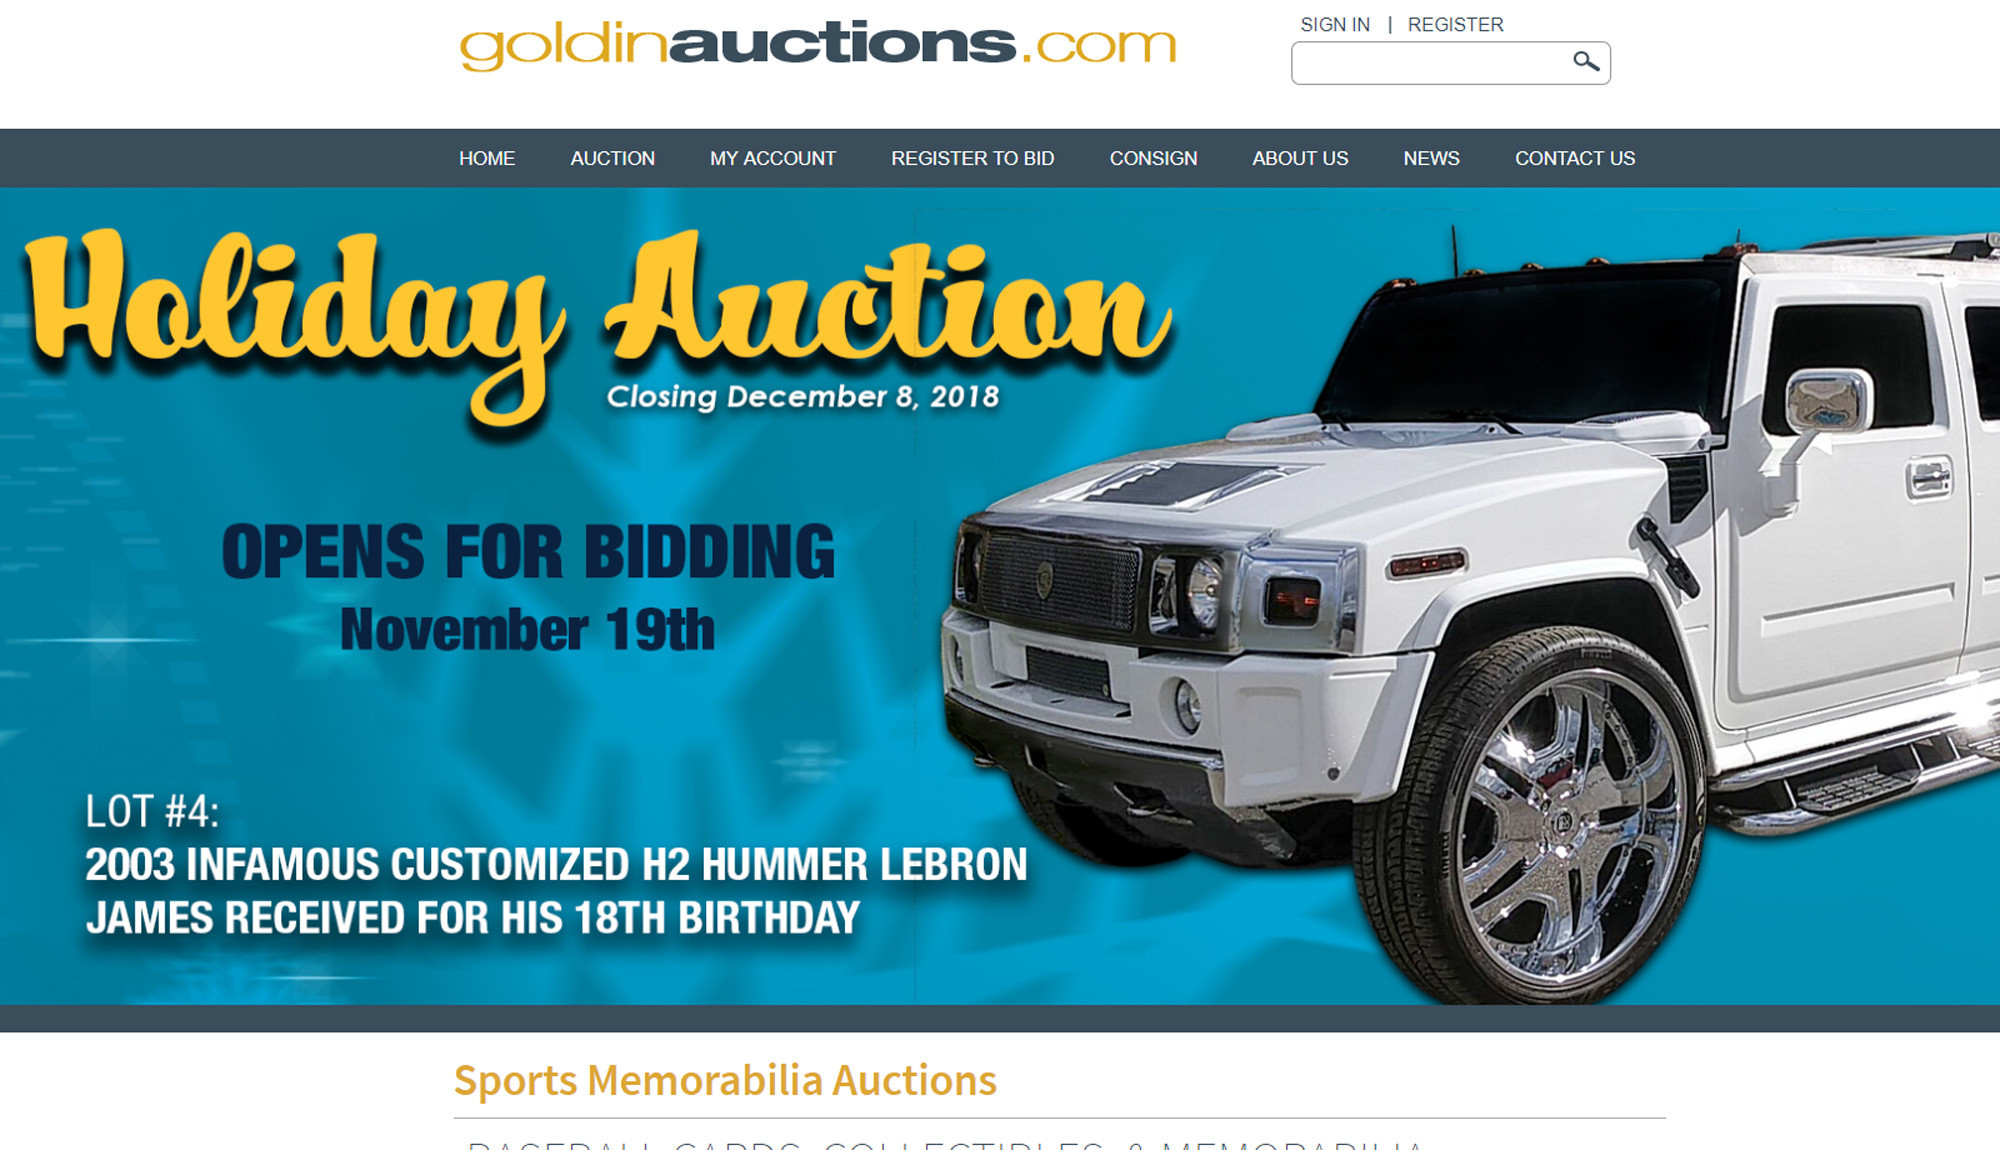 89a9c89e9cb7 ... Hummer H2 that LeBron James received as an 18th birthday present is up  for auction. LA Times - 16 35 PM ET November 16